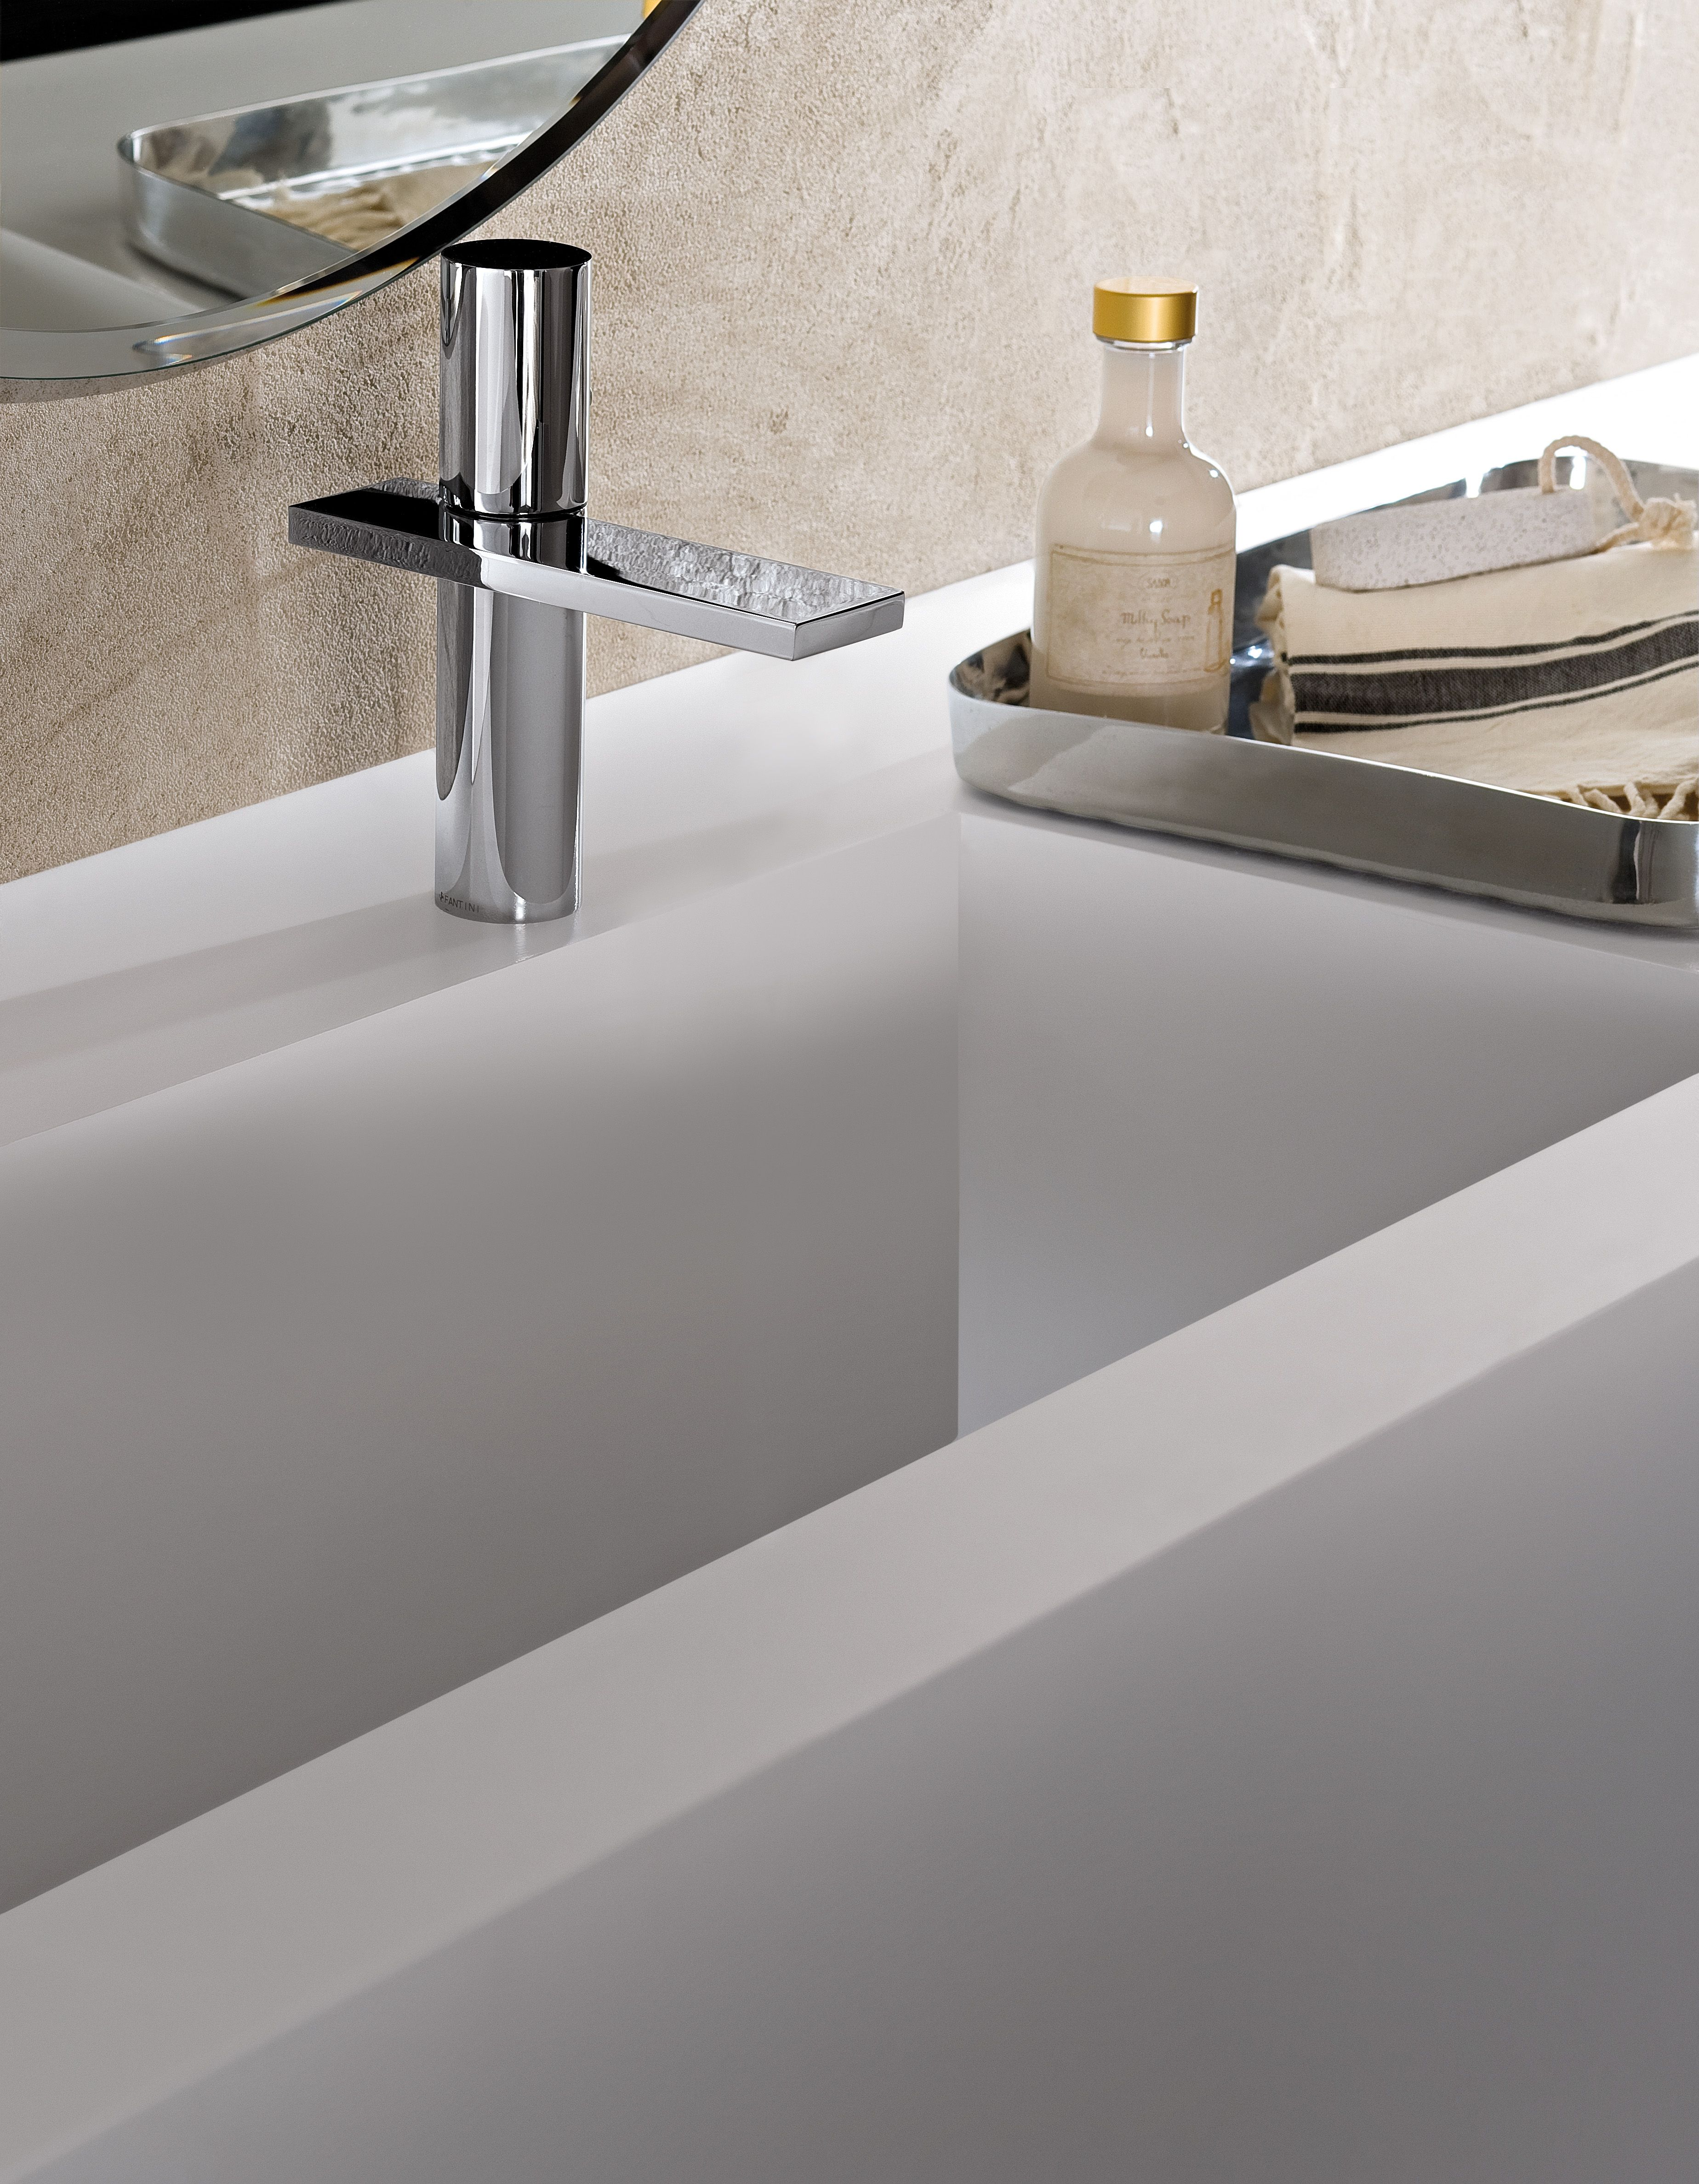 fantini basin rogerseller stainless faucets mixer milano steel faucet tapware